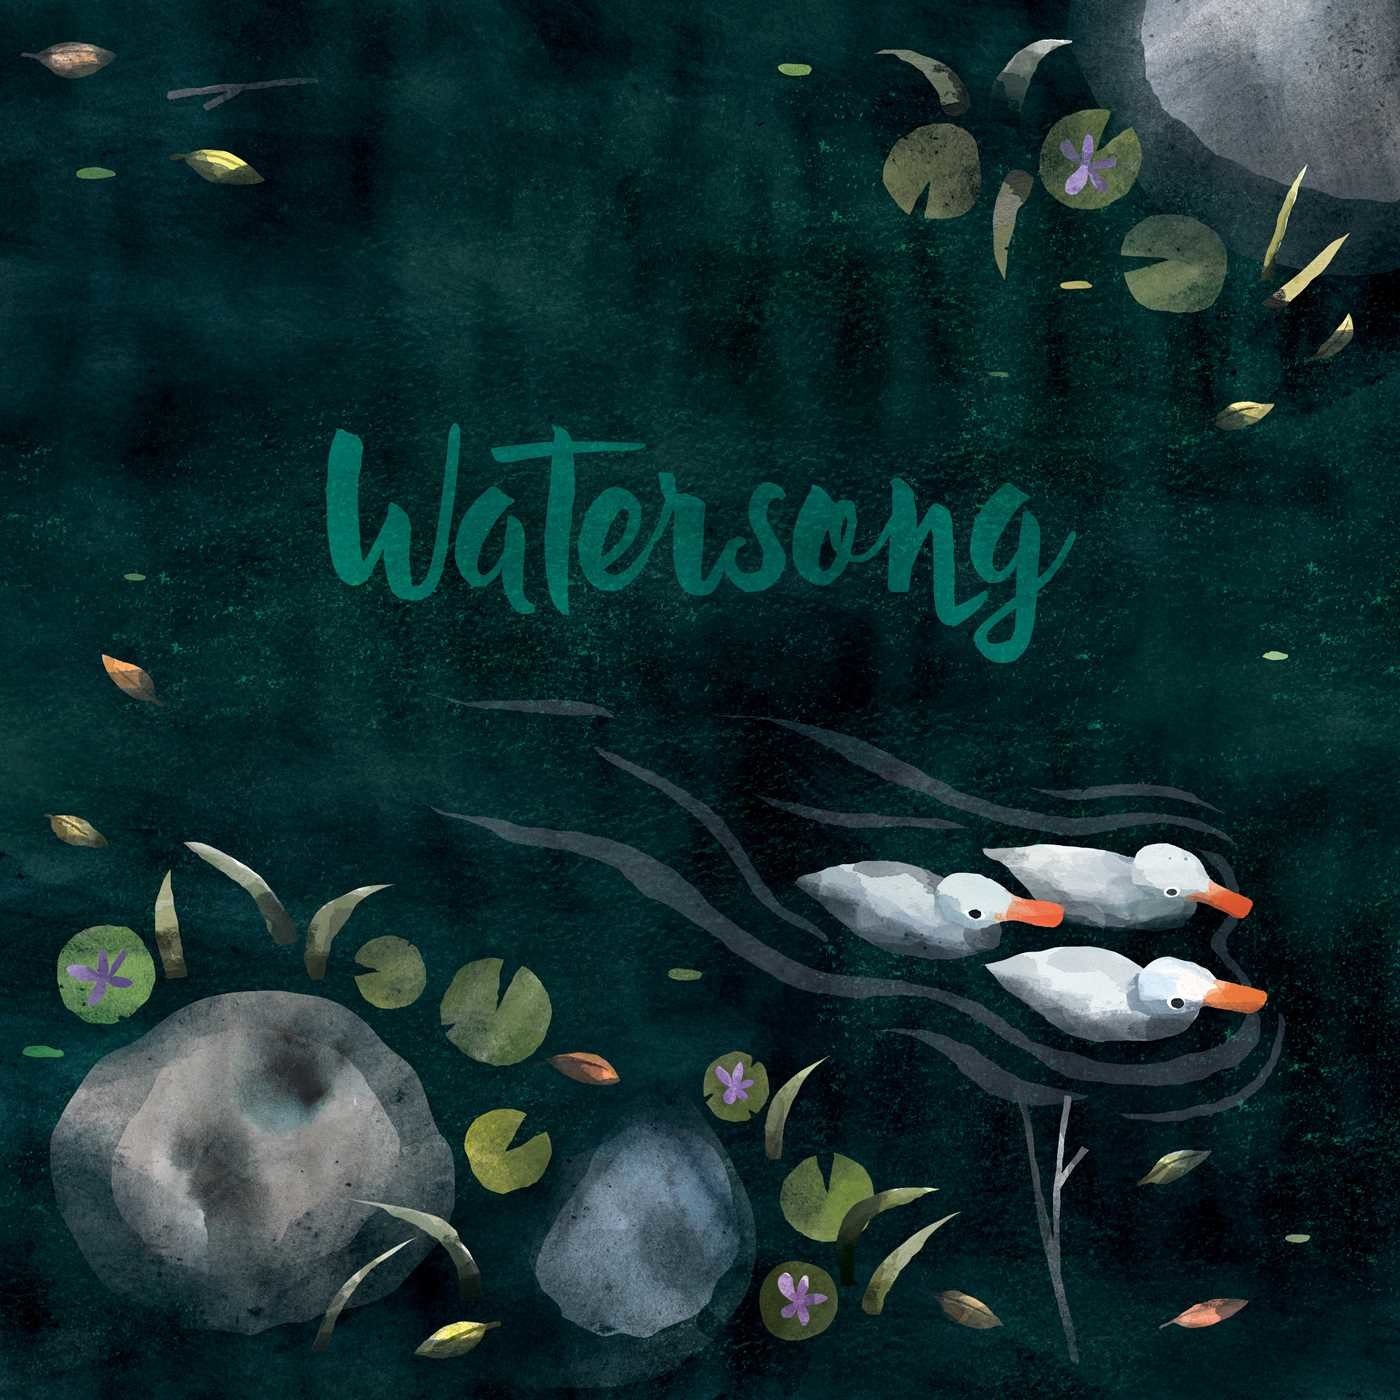 Watersong 9781481468817.in01